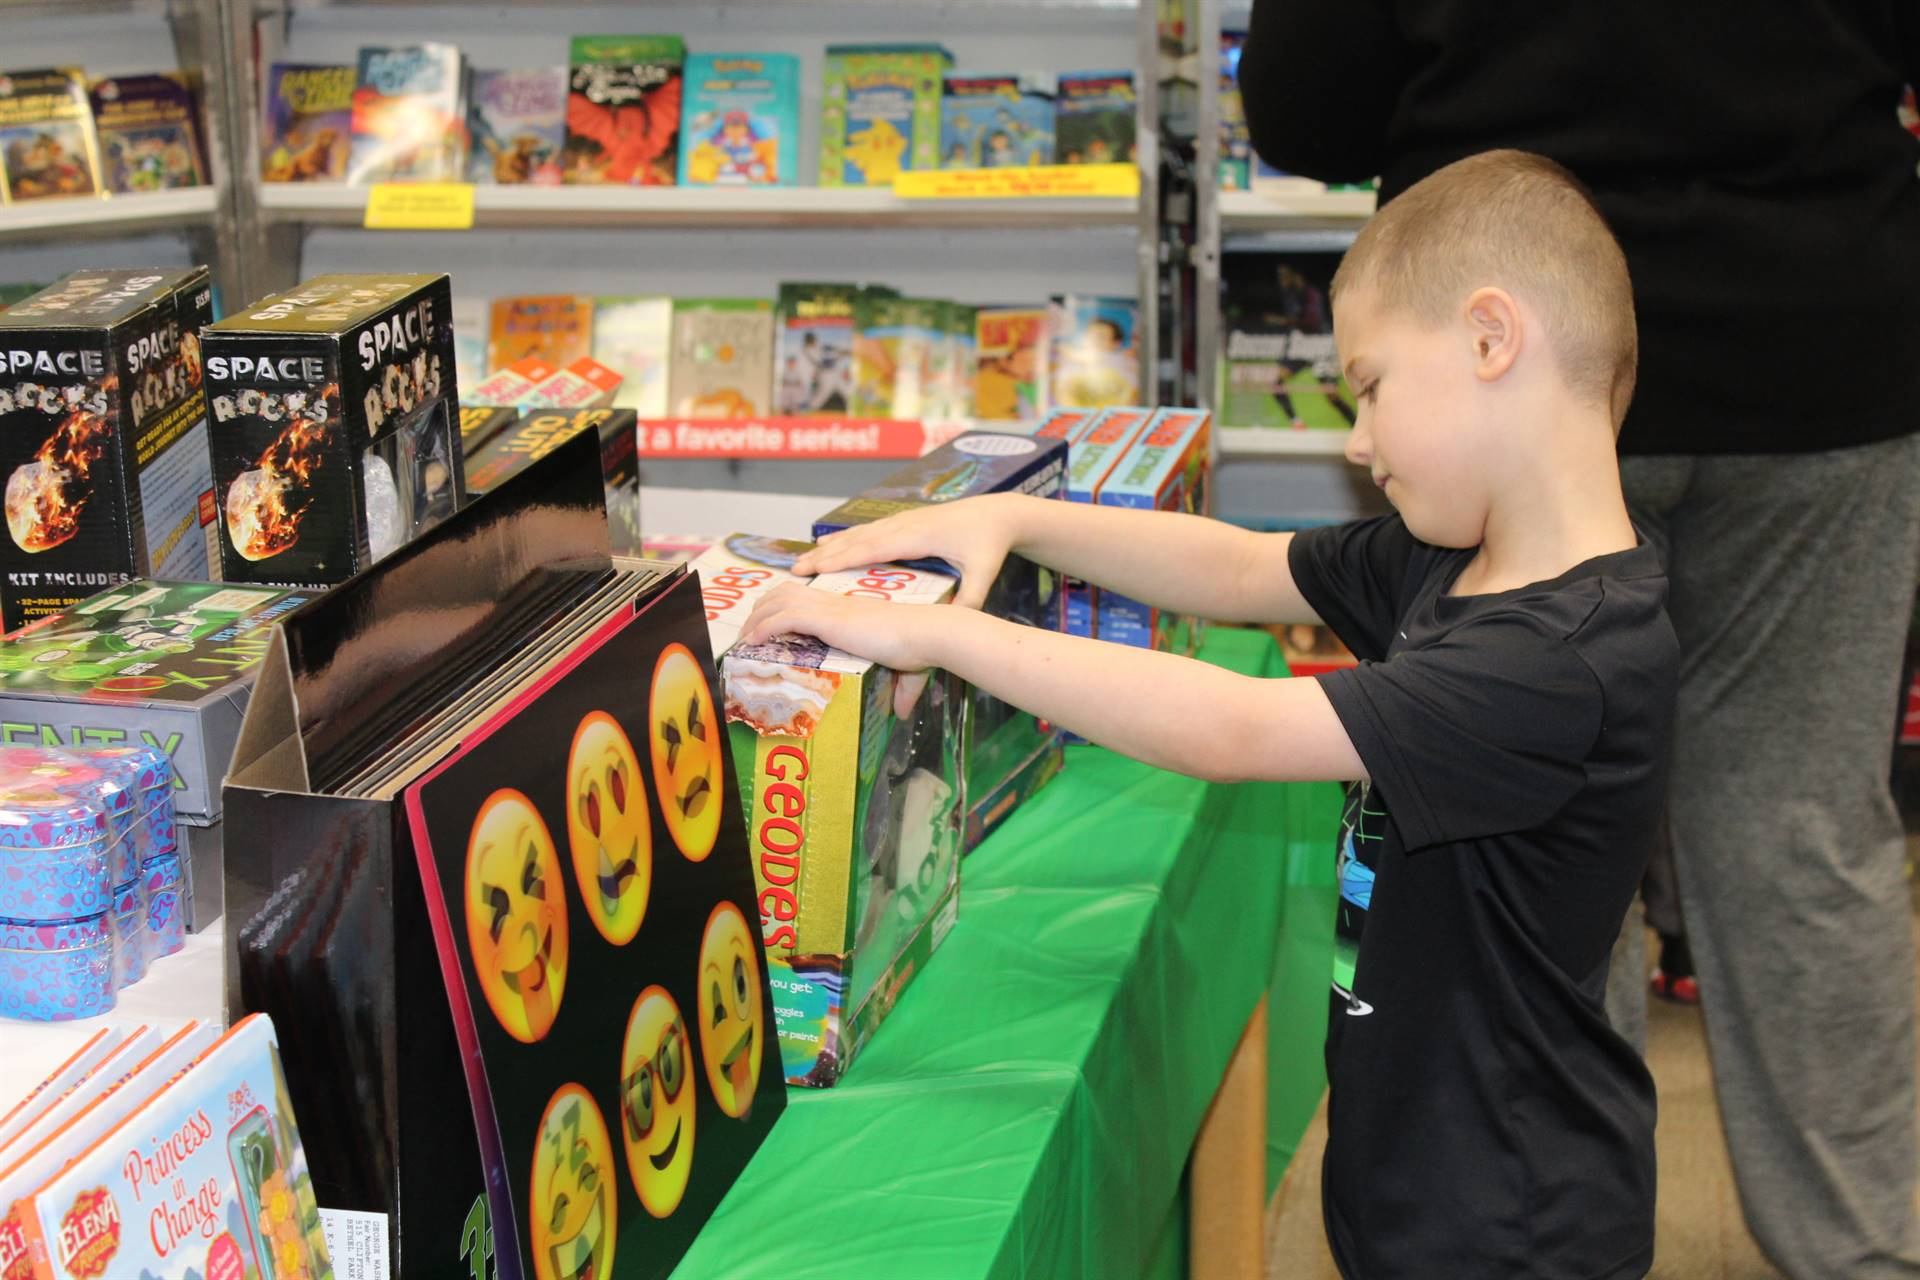 Student looking at item at the book fair